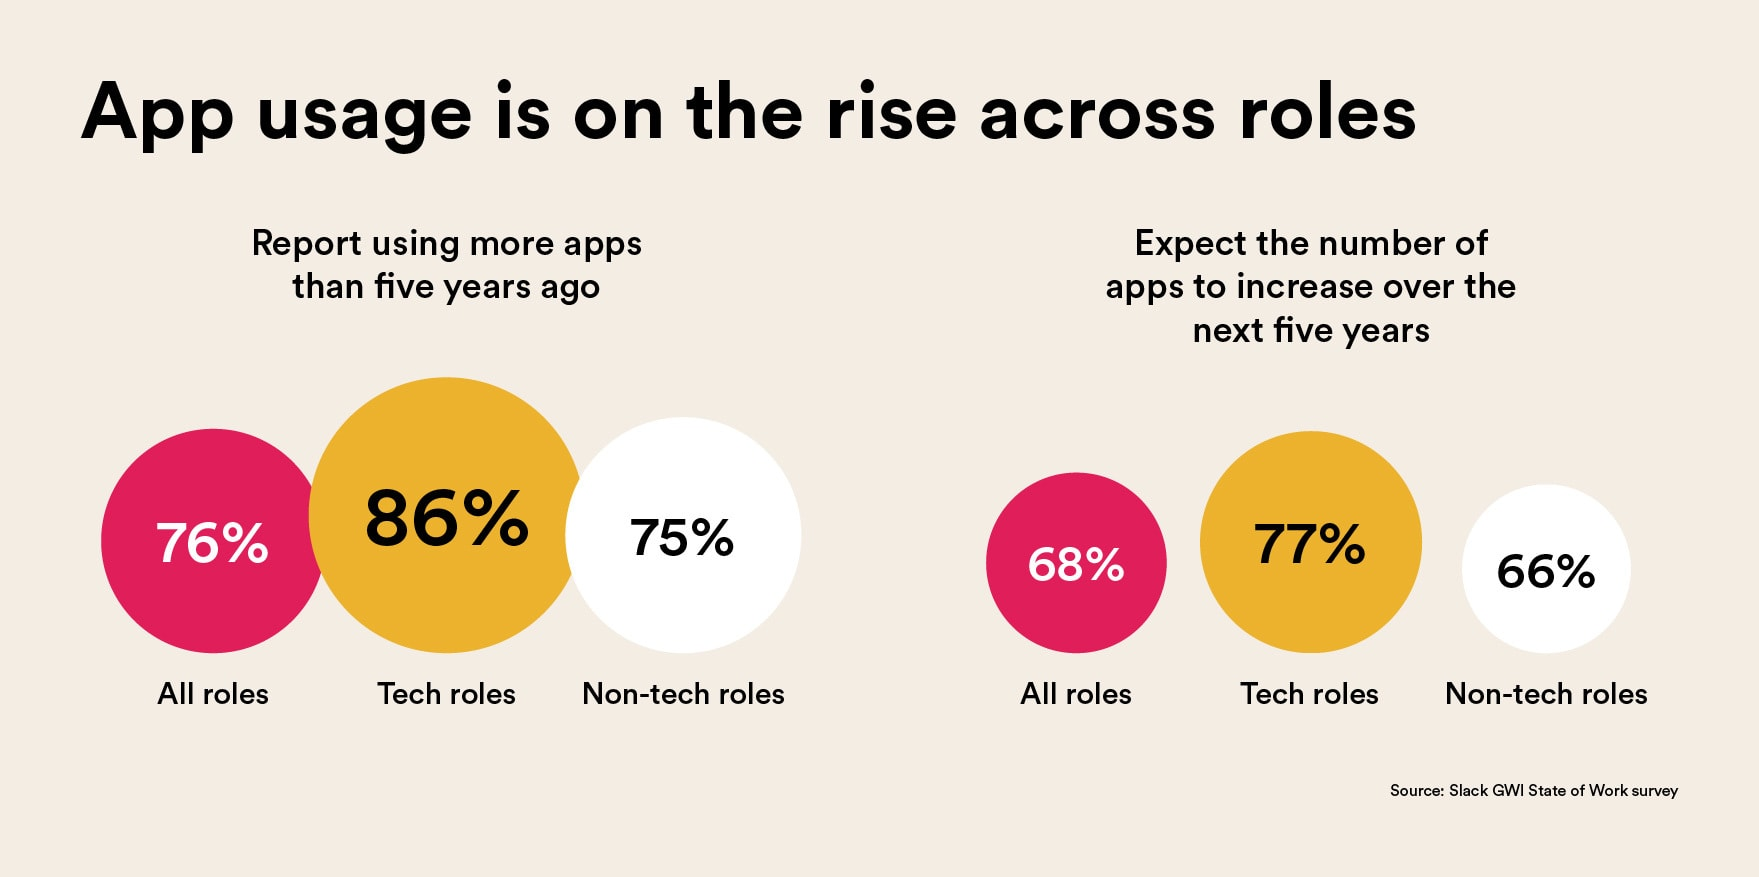 Graphic illustrating that app usage is on the rise across both tech and non-tech roles.